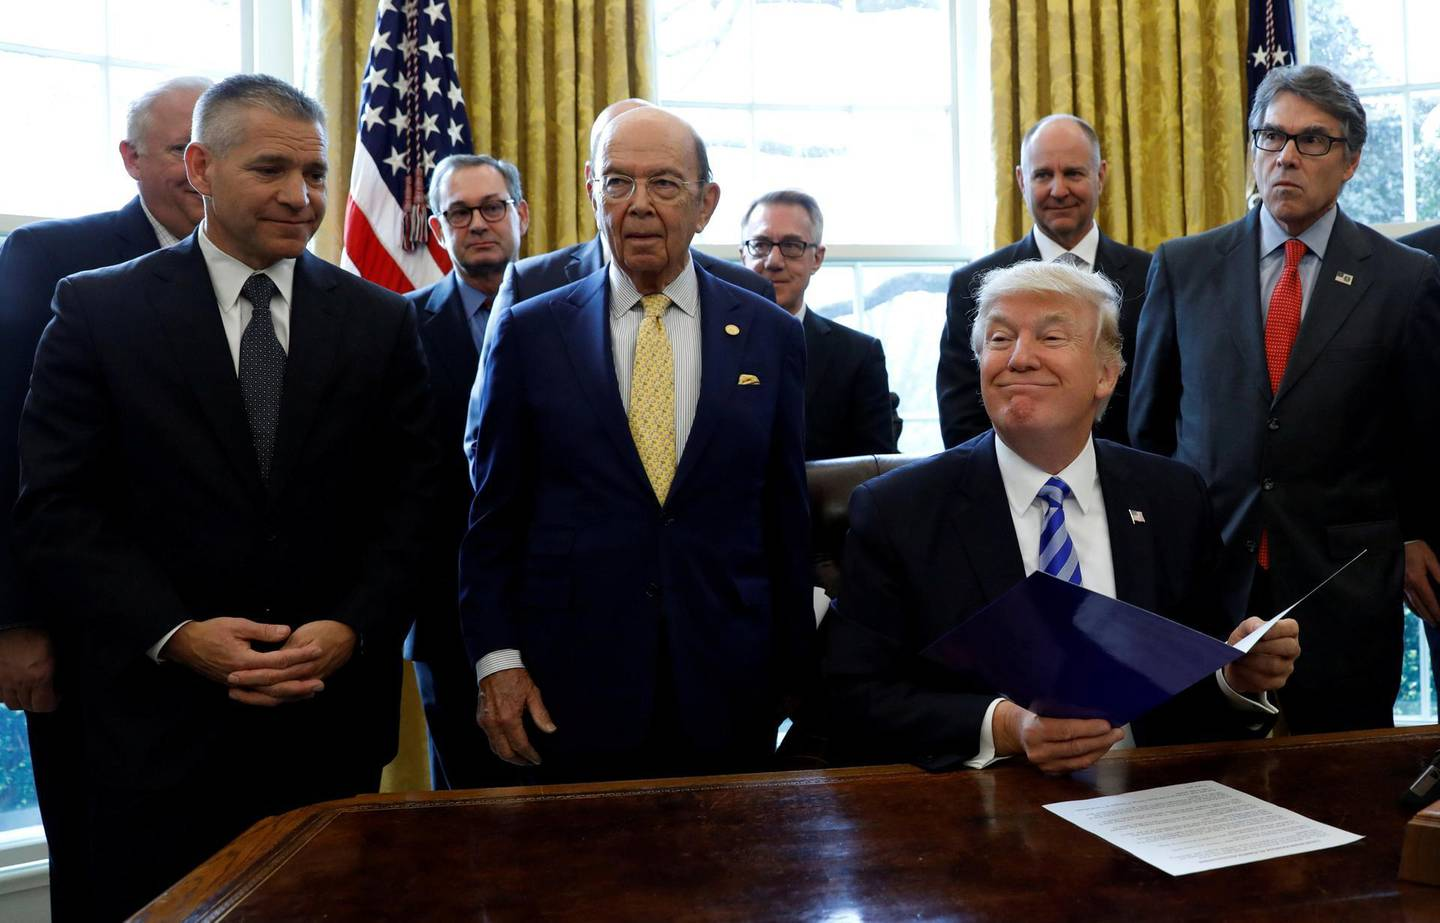 FILE PHOTO: U.S. President Donald Trump smiles after announcing a permit for TransCanada Corp's Keystone XL oil pipeline while TransCanada Chief Executive Officer Russell Girling (L), U.S. Commerce Secretary Wilbur Ross (C) and Energy Secretary Rick Perry (R) stand beside him in the Oval Office of the White House in Washington, U.S., March 24, 2017. REUTERS/Kevin Lamarque/File Photo